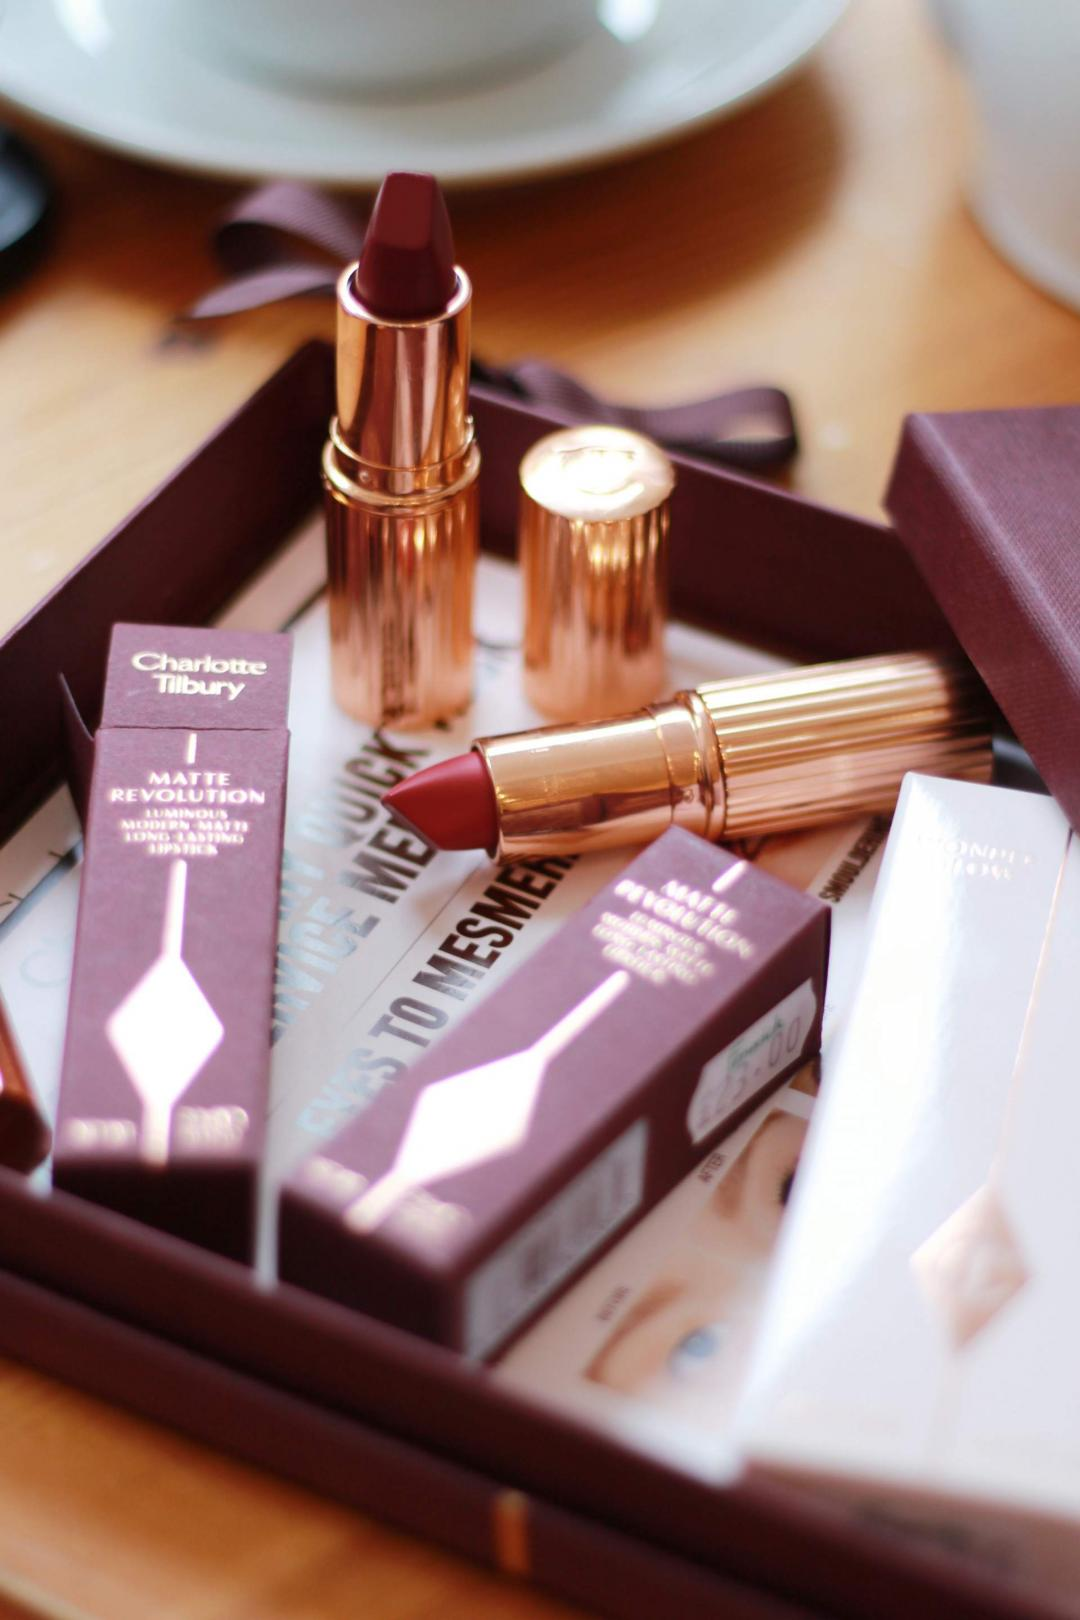 charlotte-tilbury-amazing-grace-love-liberty-lipstick-wonder-glow-newcastle-fenwick